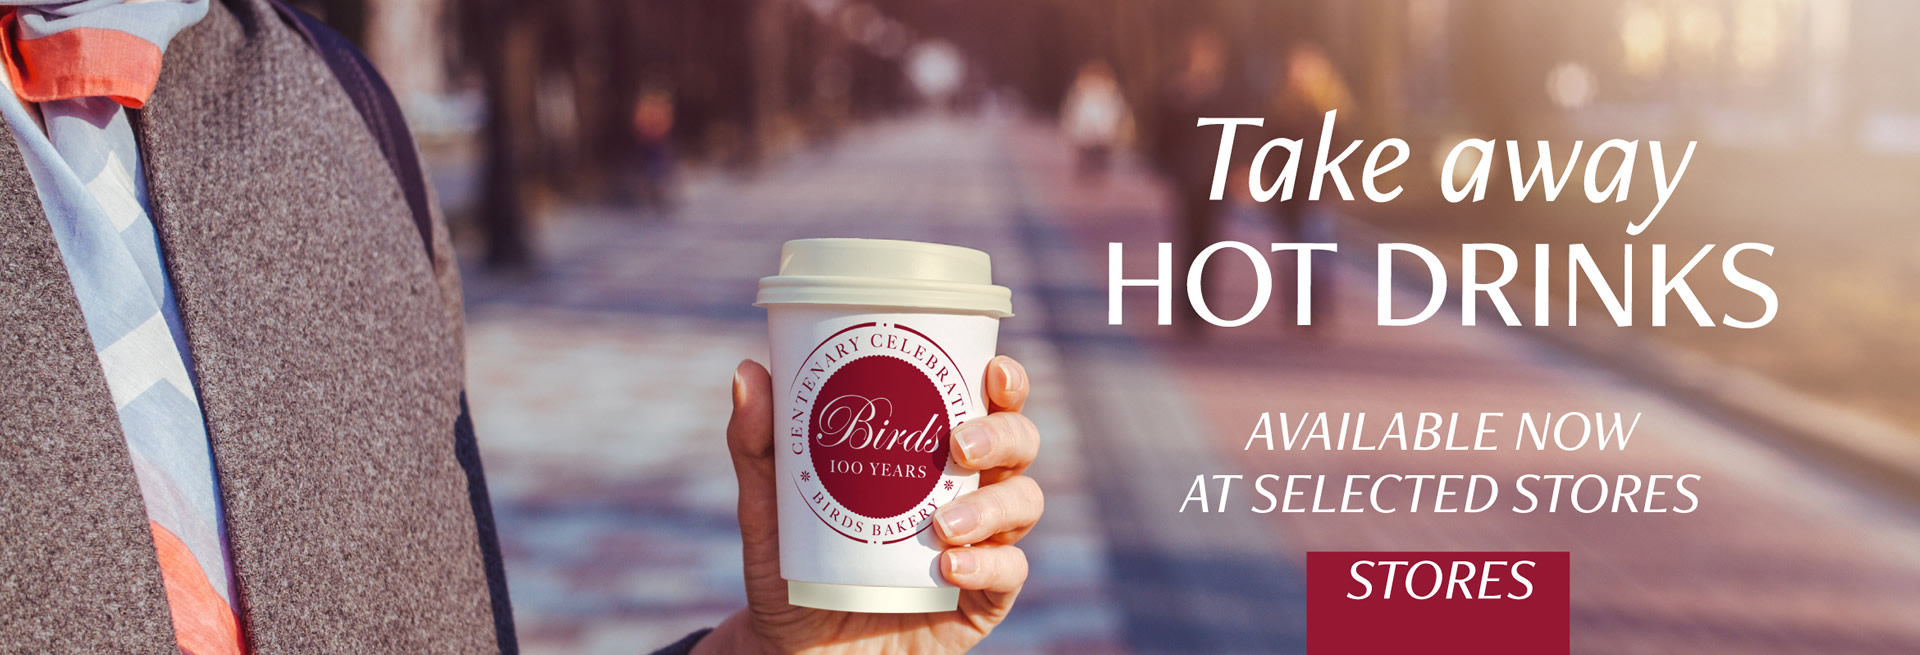 Take Away Hot Drinks, Available Now at selected stores